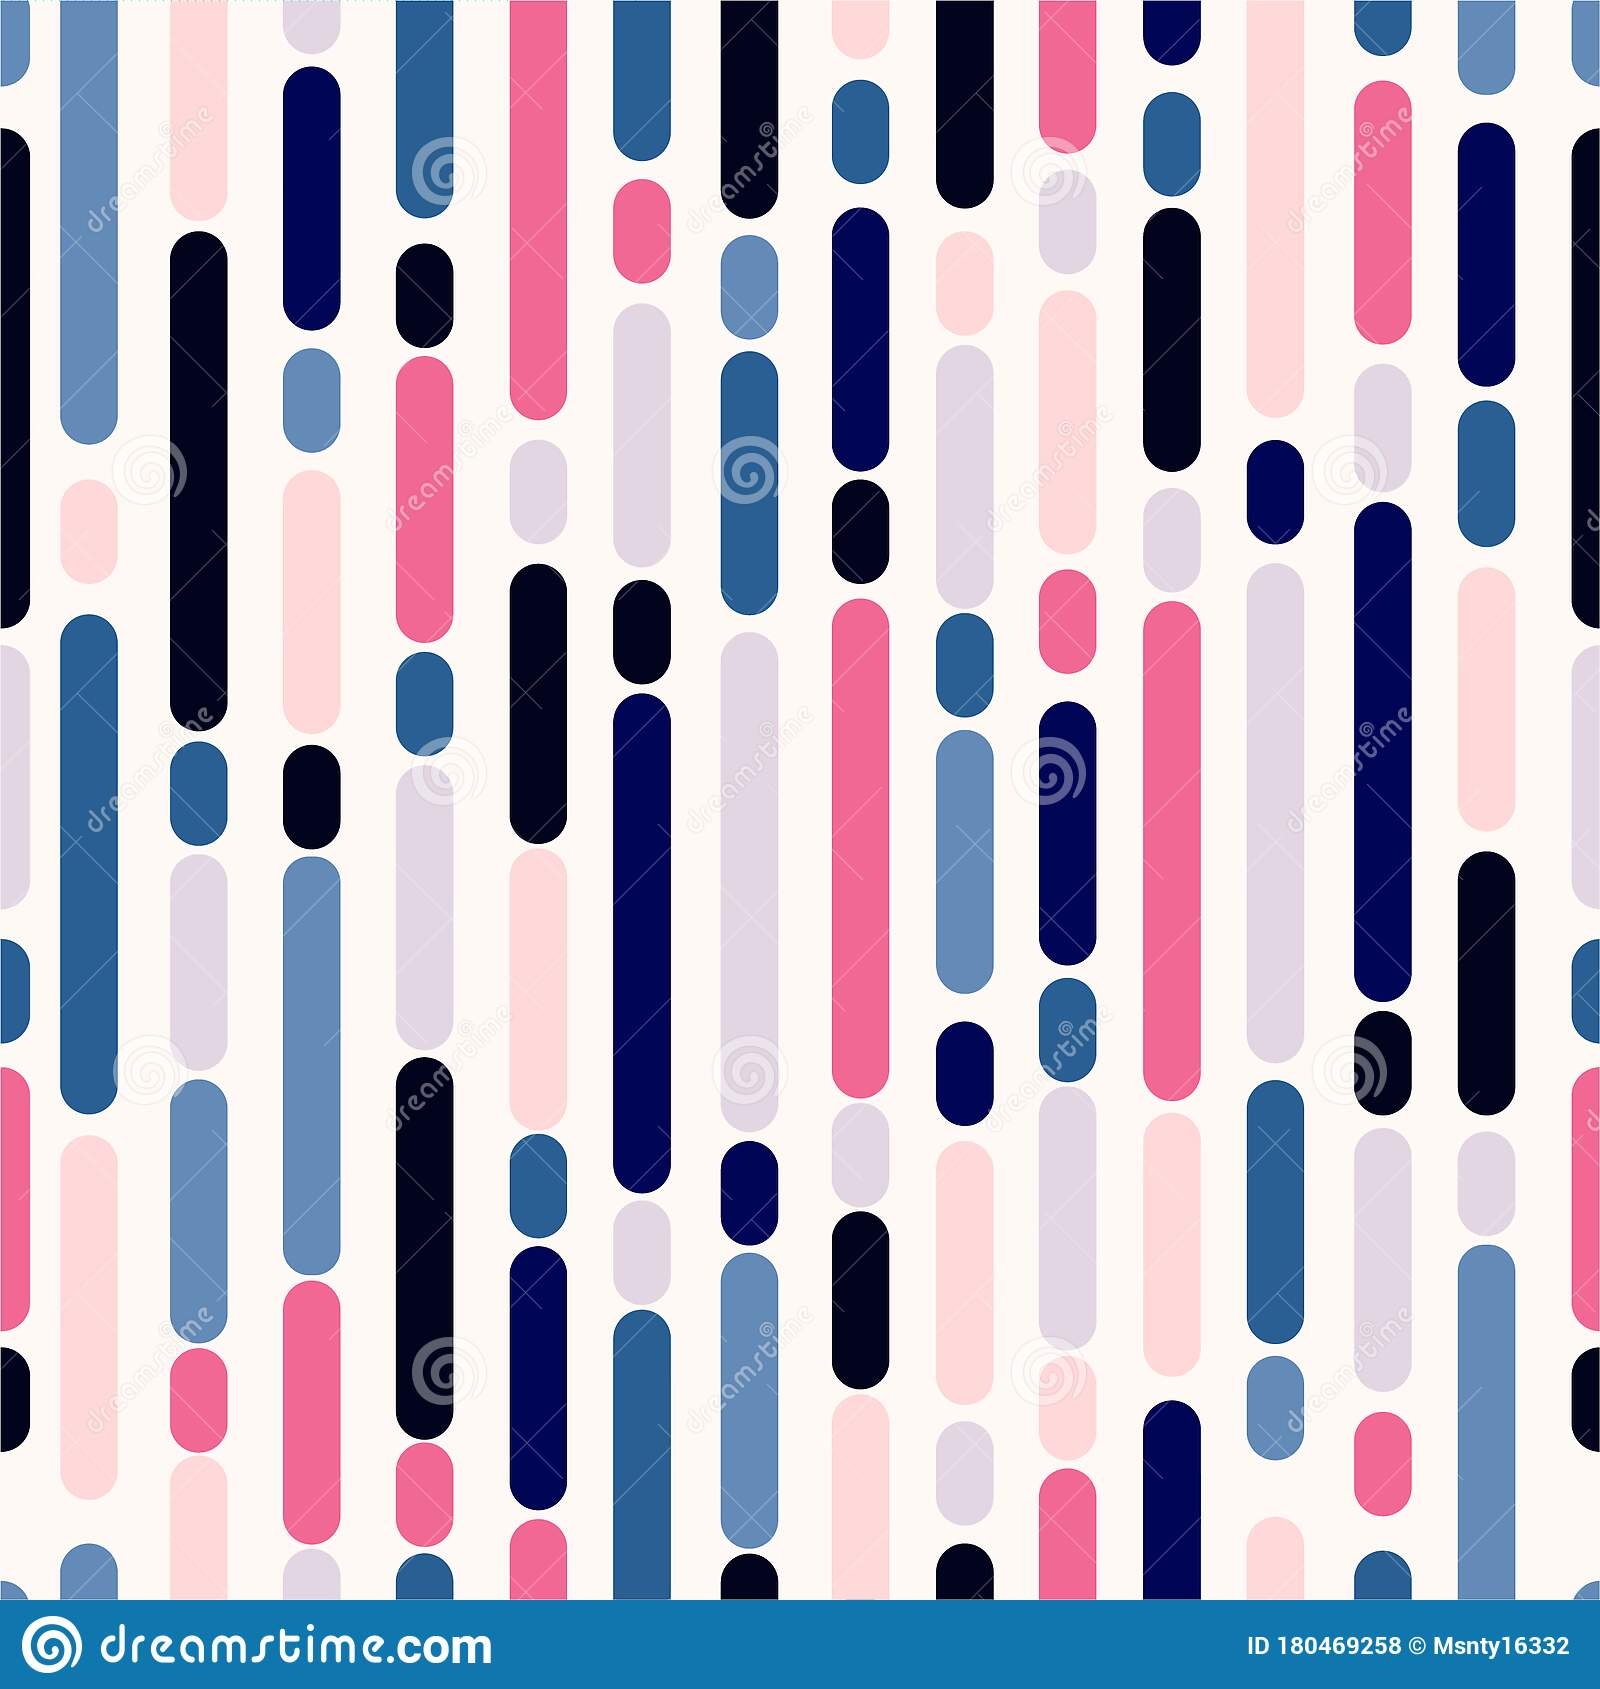 Colorful Sweet Mood Rounded Lines Vertical Striped Seamless Vector Eps10 Design For Fashion Fabric Web Wrapping And All Print Stock Vector Illustration Of Fabric Decor 180469258